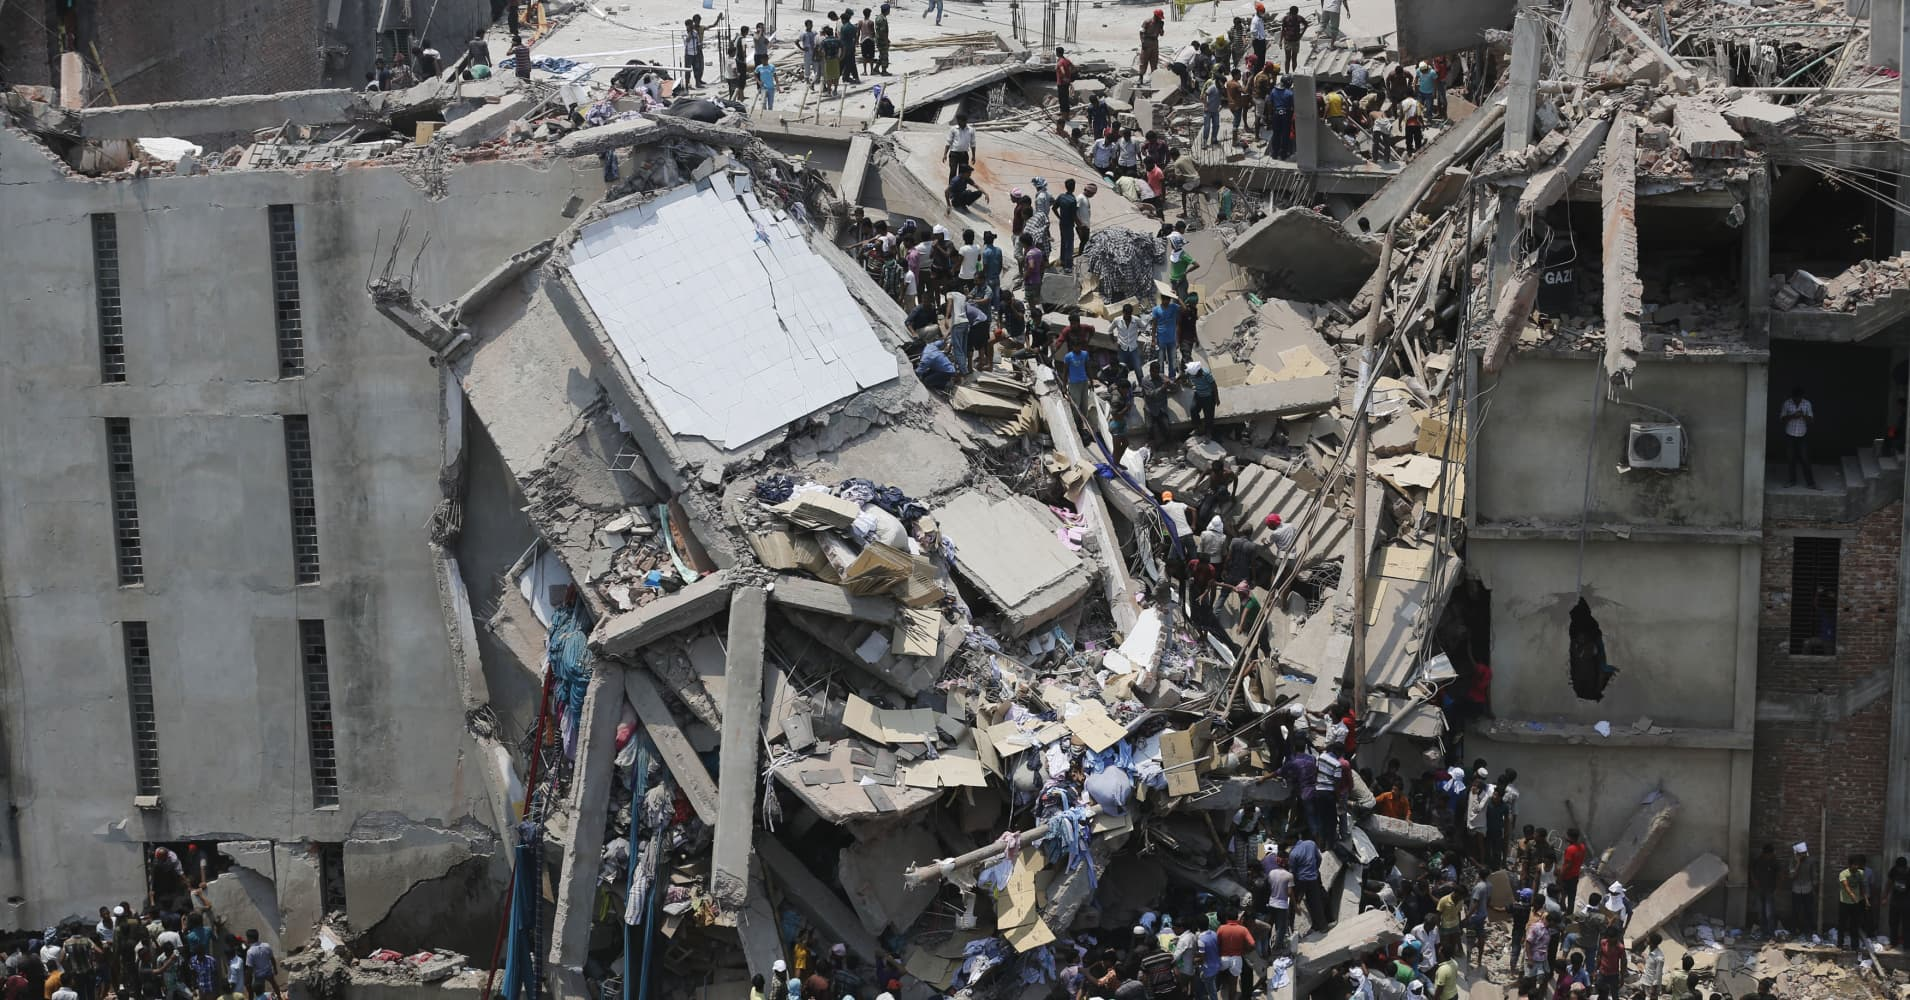 Bangladesh Factory Building Collapse Kills Over 100